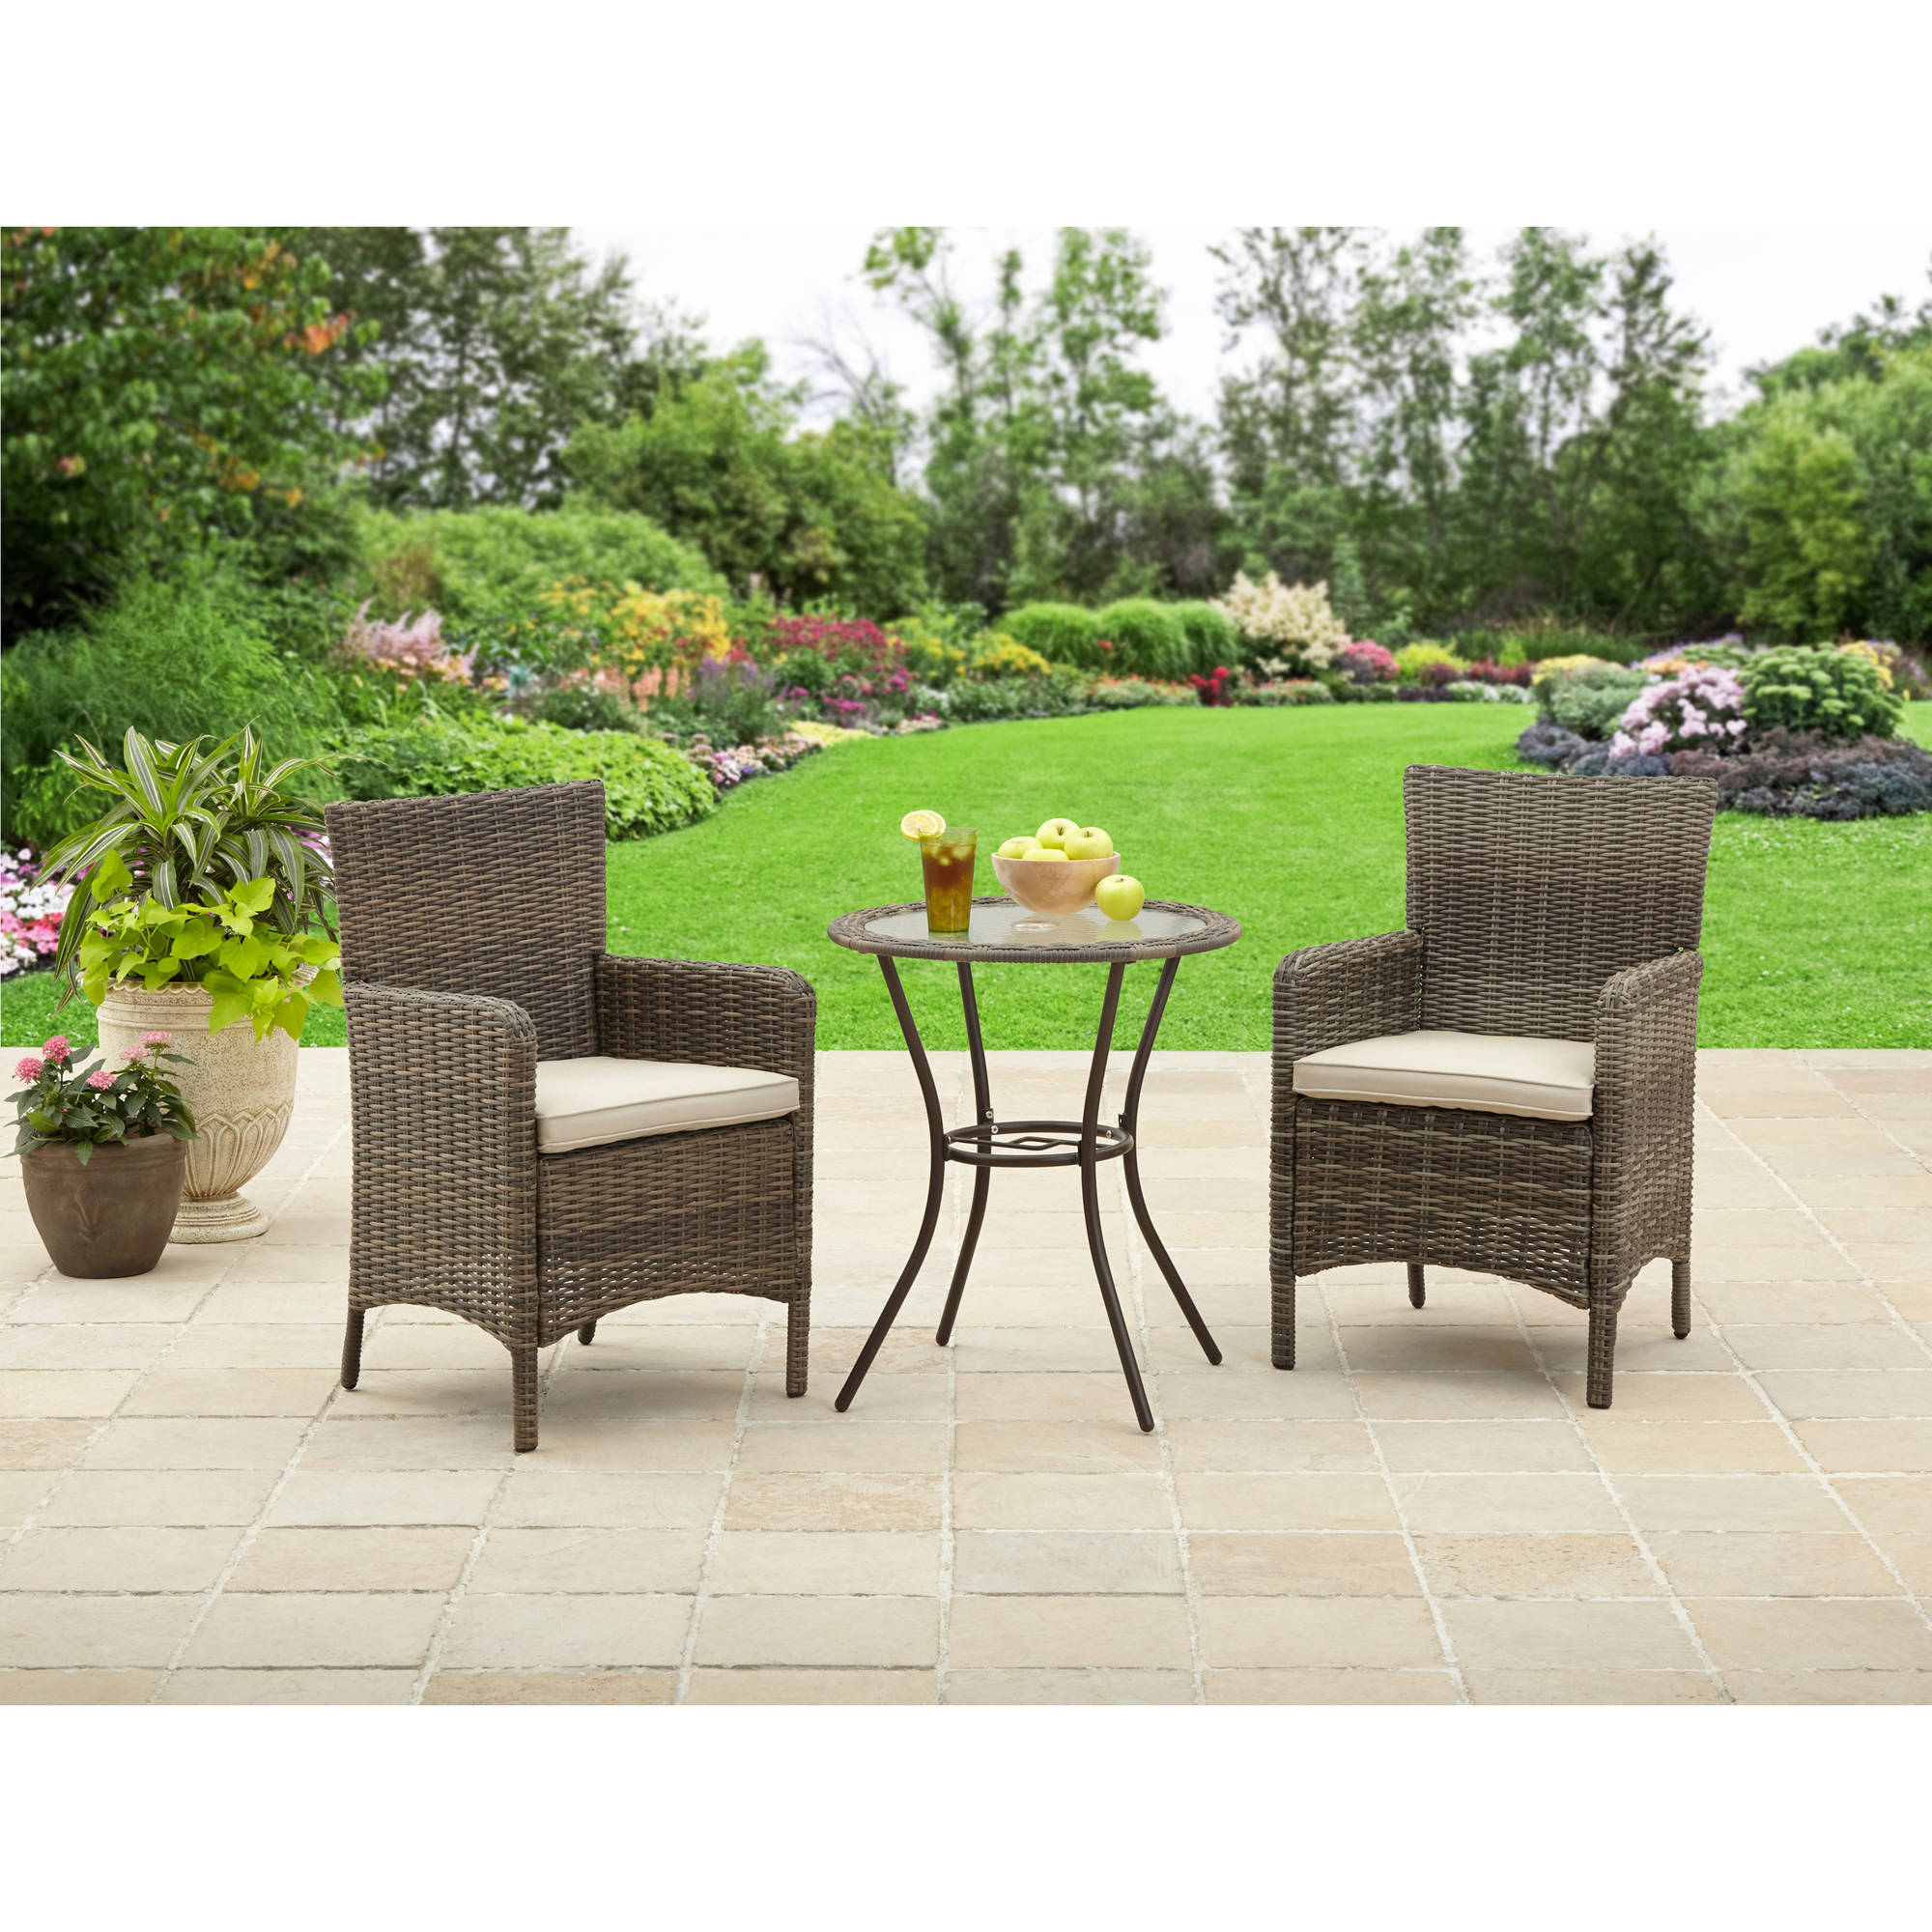 Better Homes & Gardens Whitehaven 3-Piece Bistro Set by Dalian Evert Industry Co.,Ltd